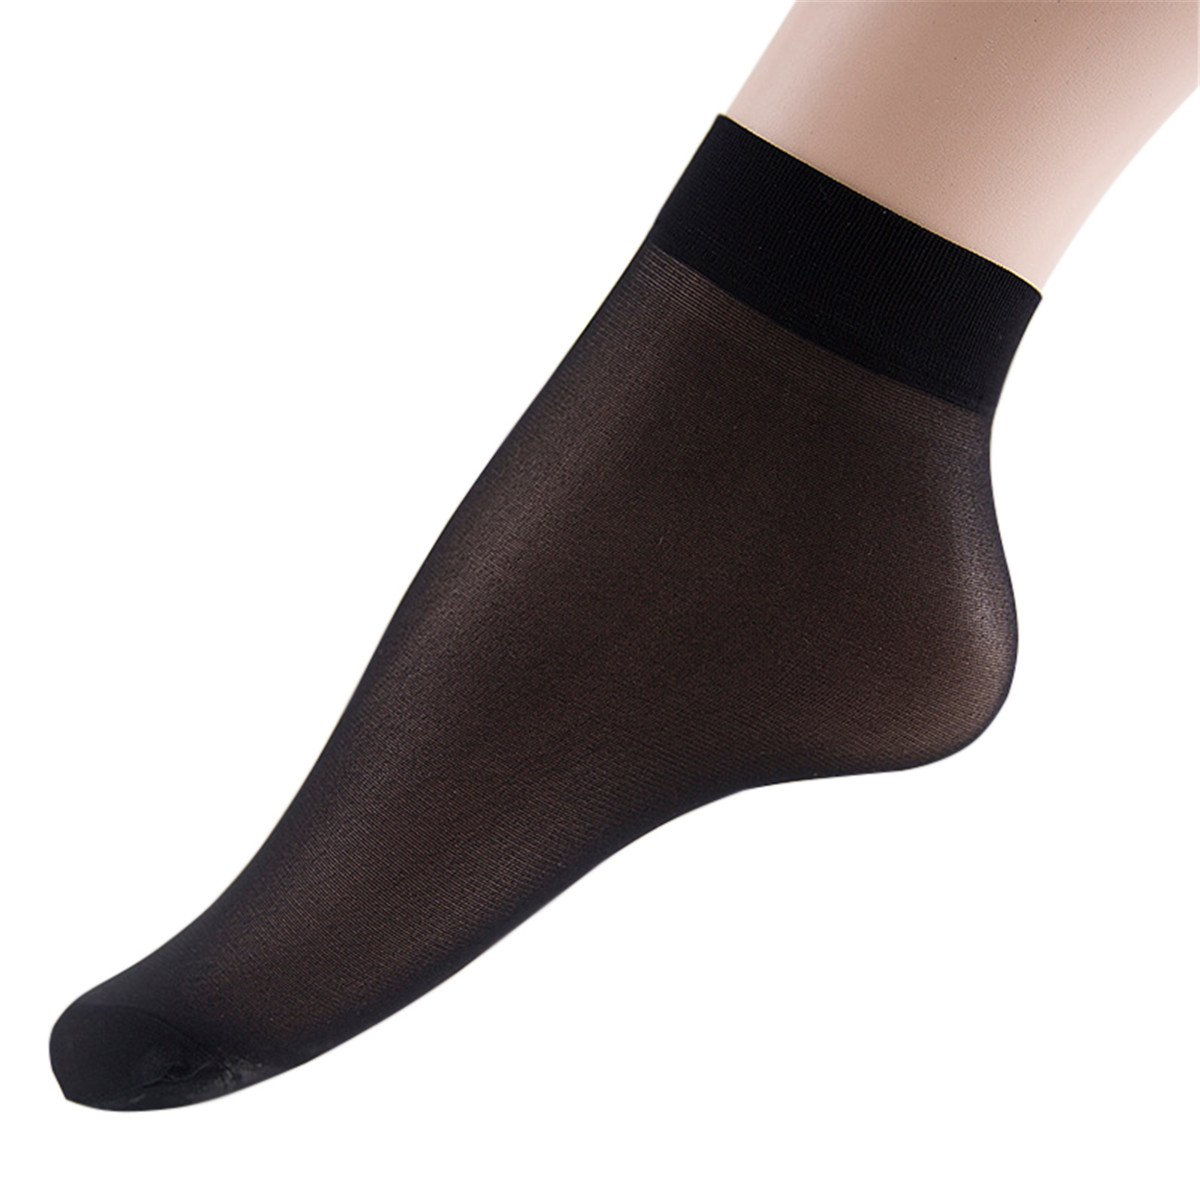 ECYC 10Pairs Women Silk Socks Ultra Thin Velvet Short Socks Ankle Hosiery, Black